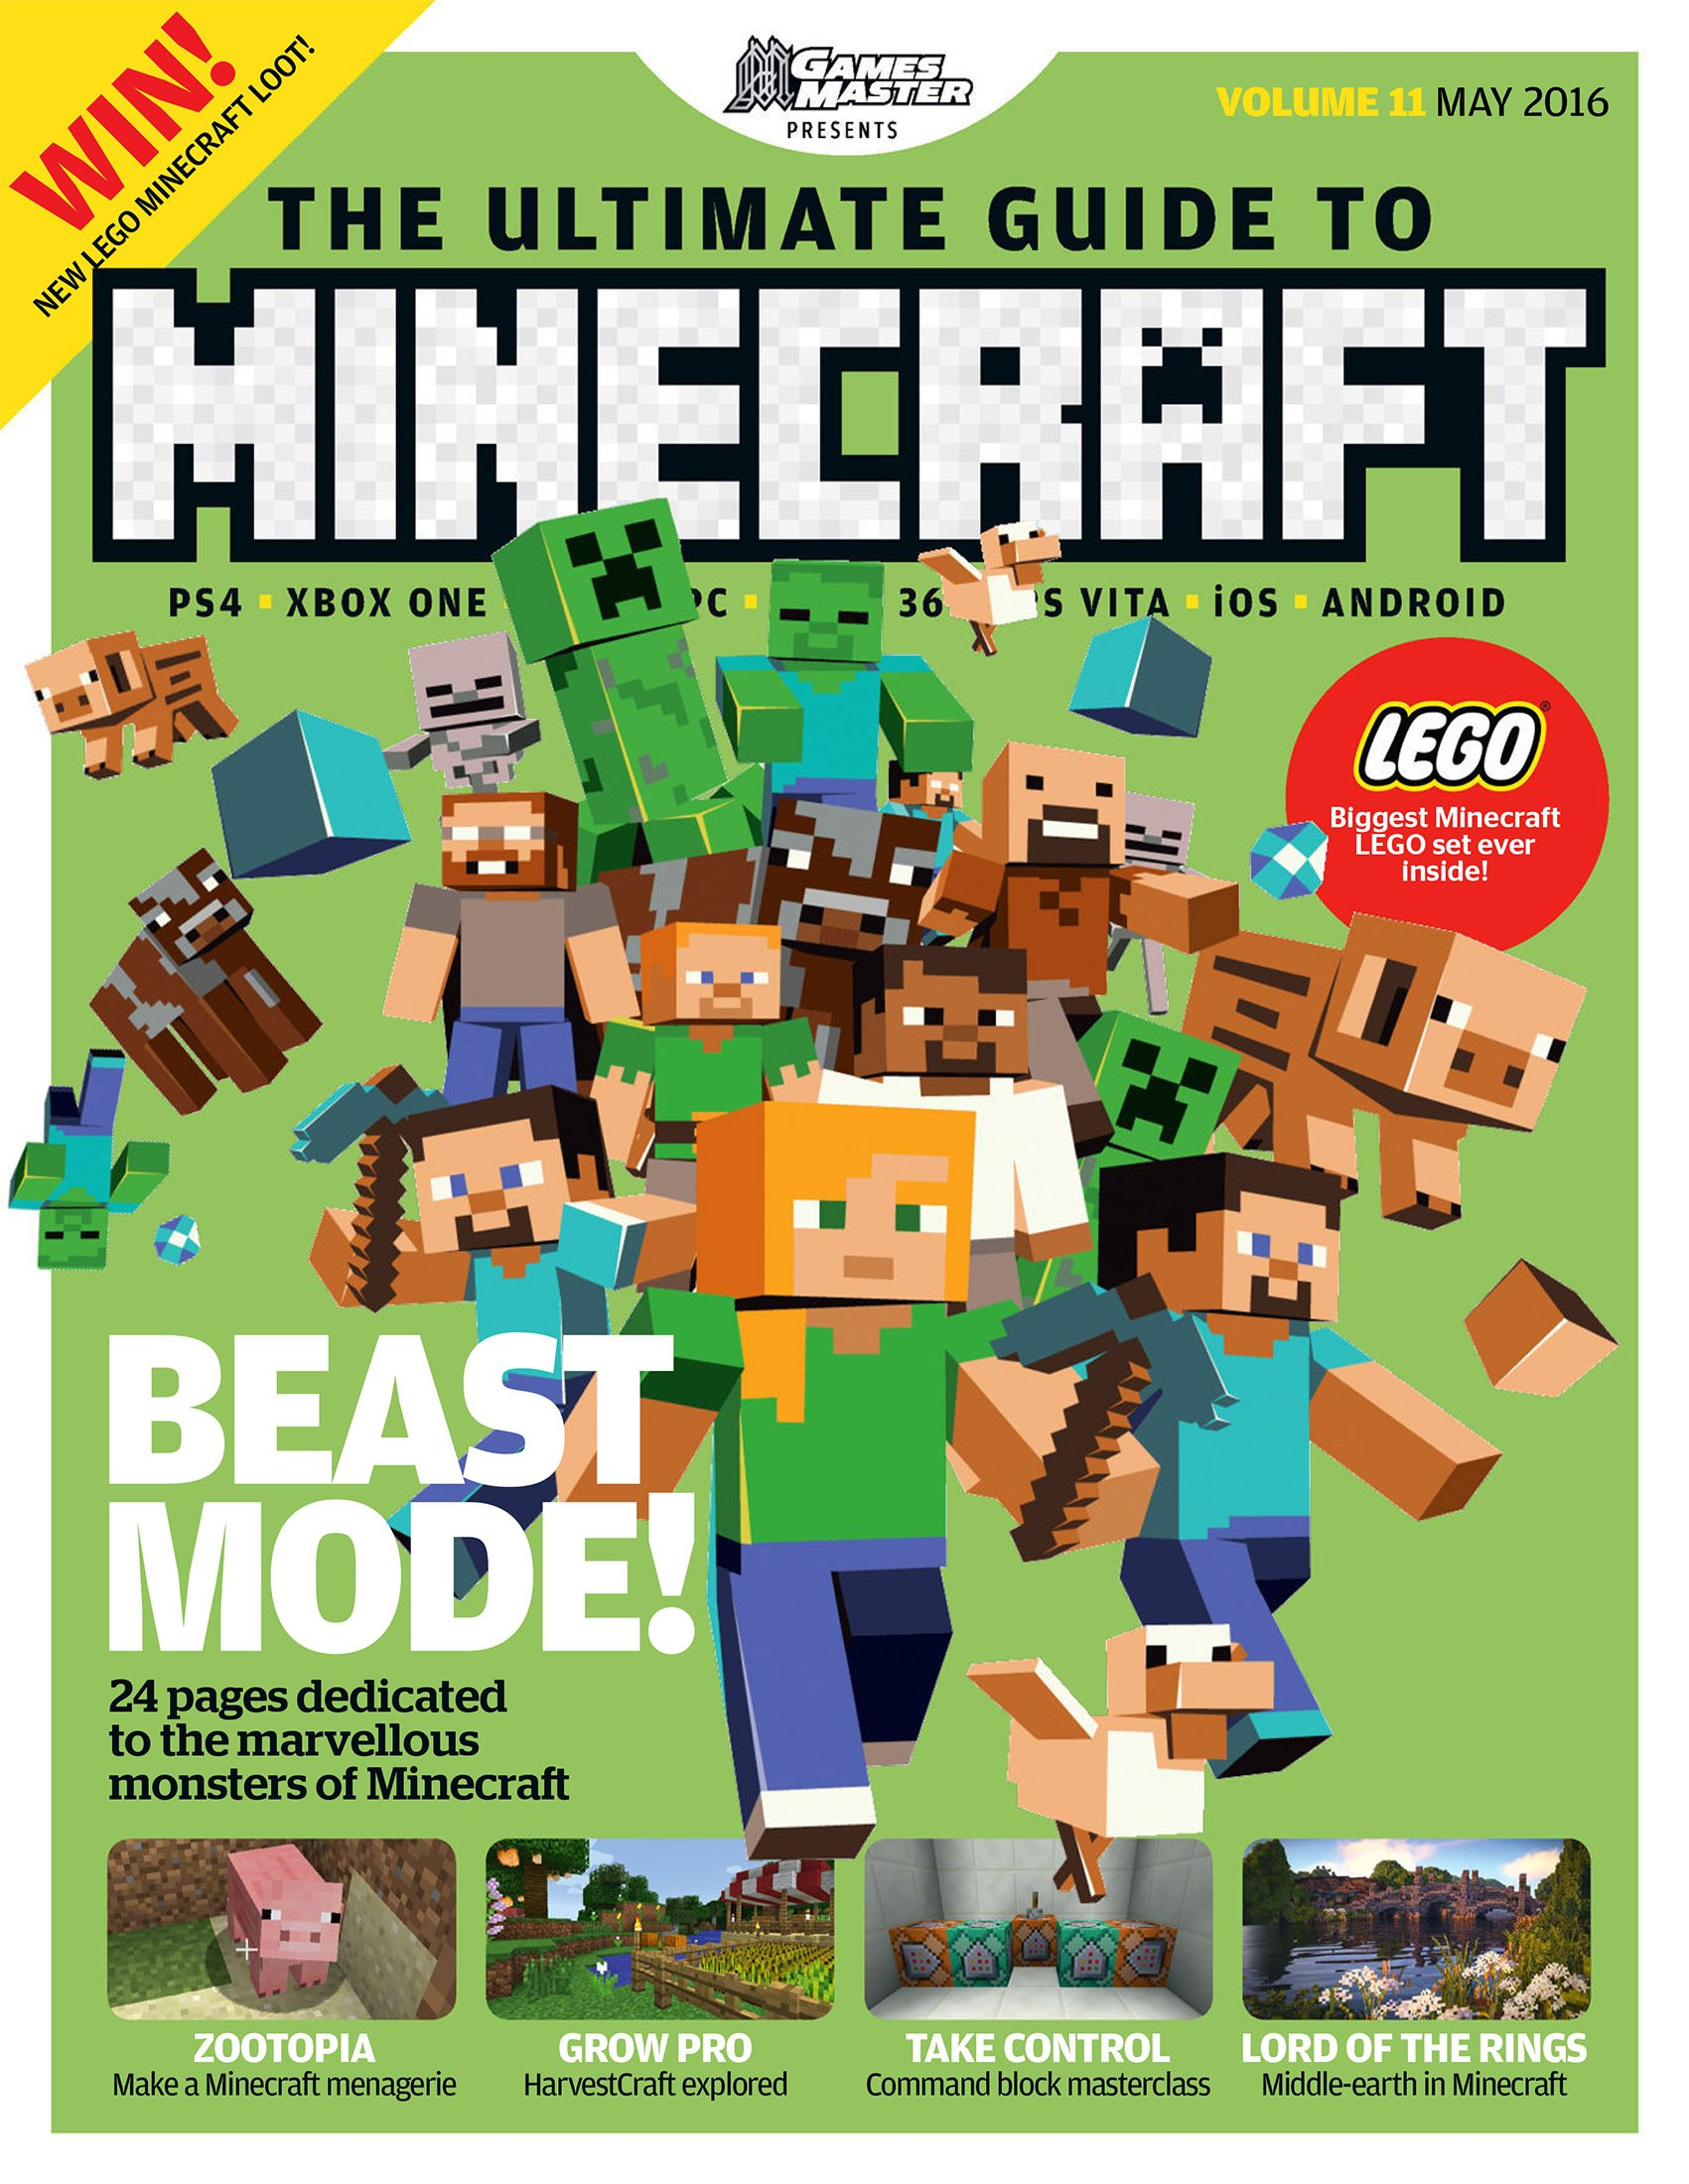 GamesMaster Presents: The Ultimate Guide to Minecraft Vol.11 (May 2016)